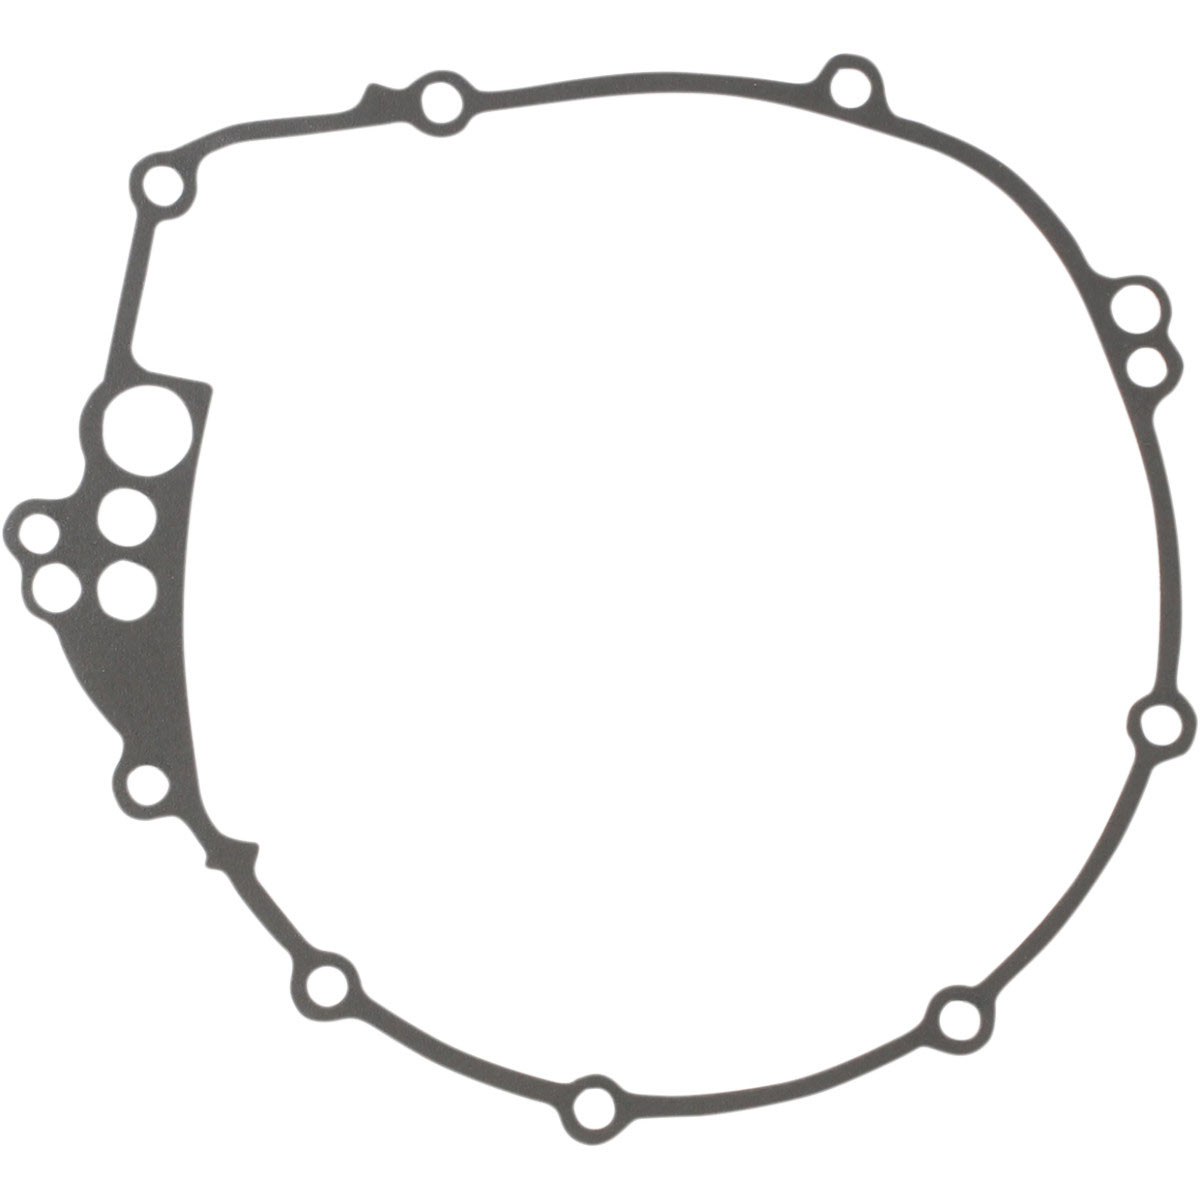 Cometic Clutch Cover Gasket for YZF-R6 99-02